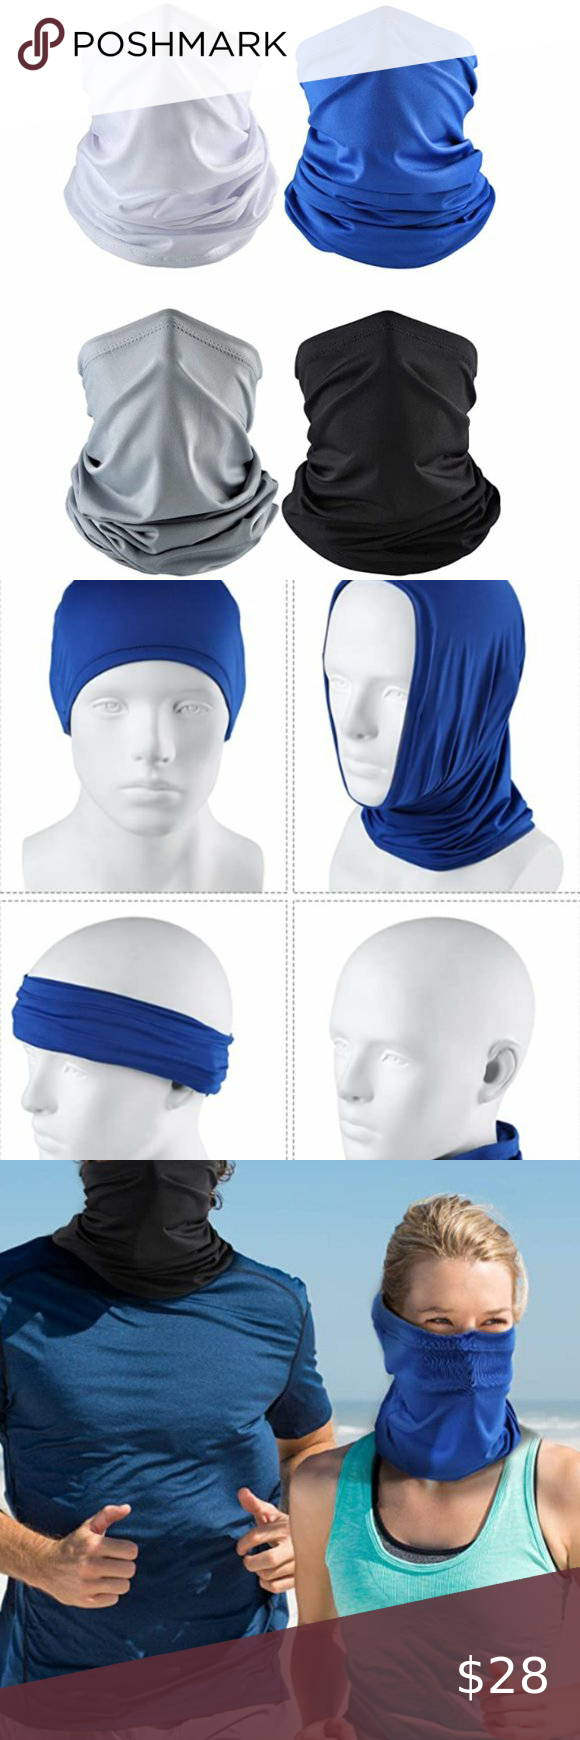 NWOT Face Cover//Neck Gator Blue With Design